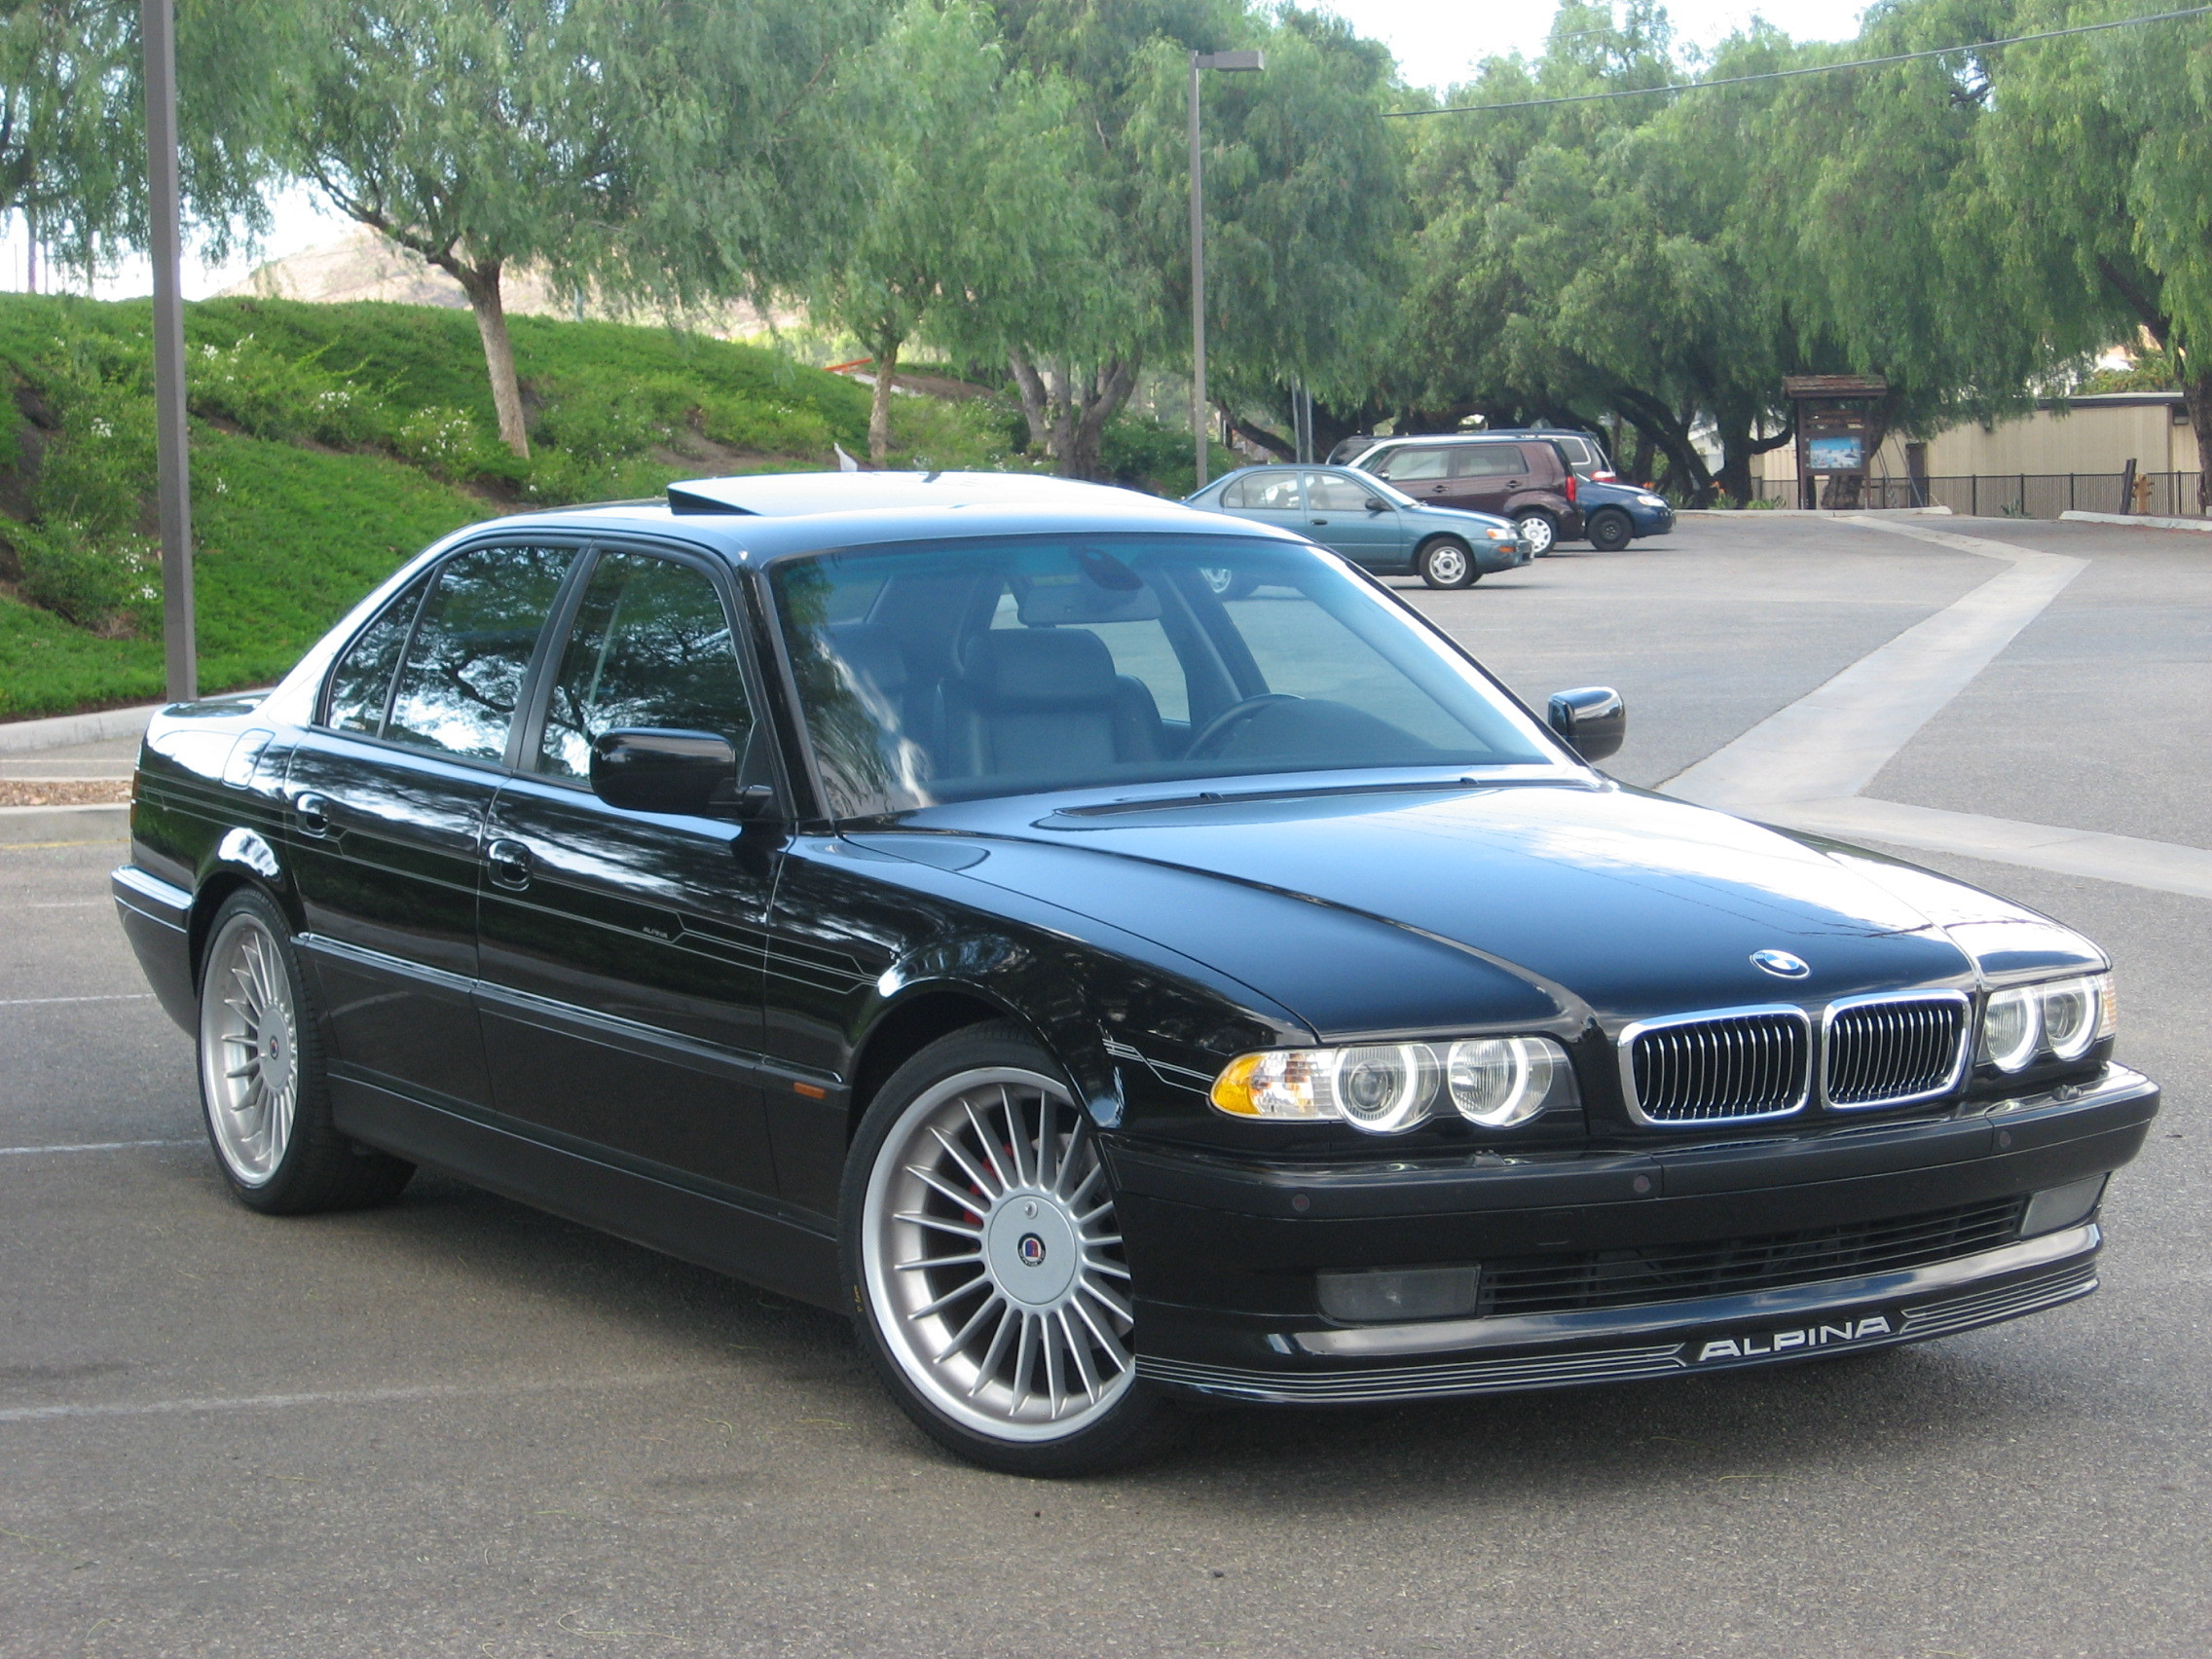 Snitch740i 2000 BMW 7 Series31124610076 Original